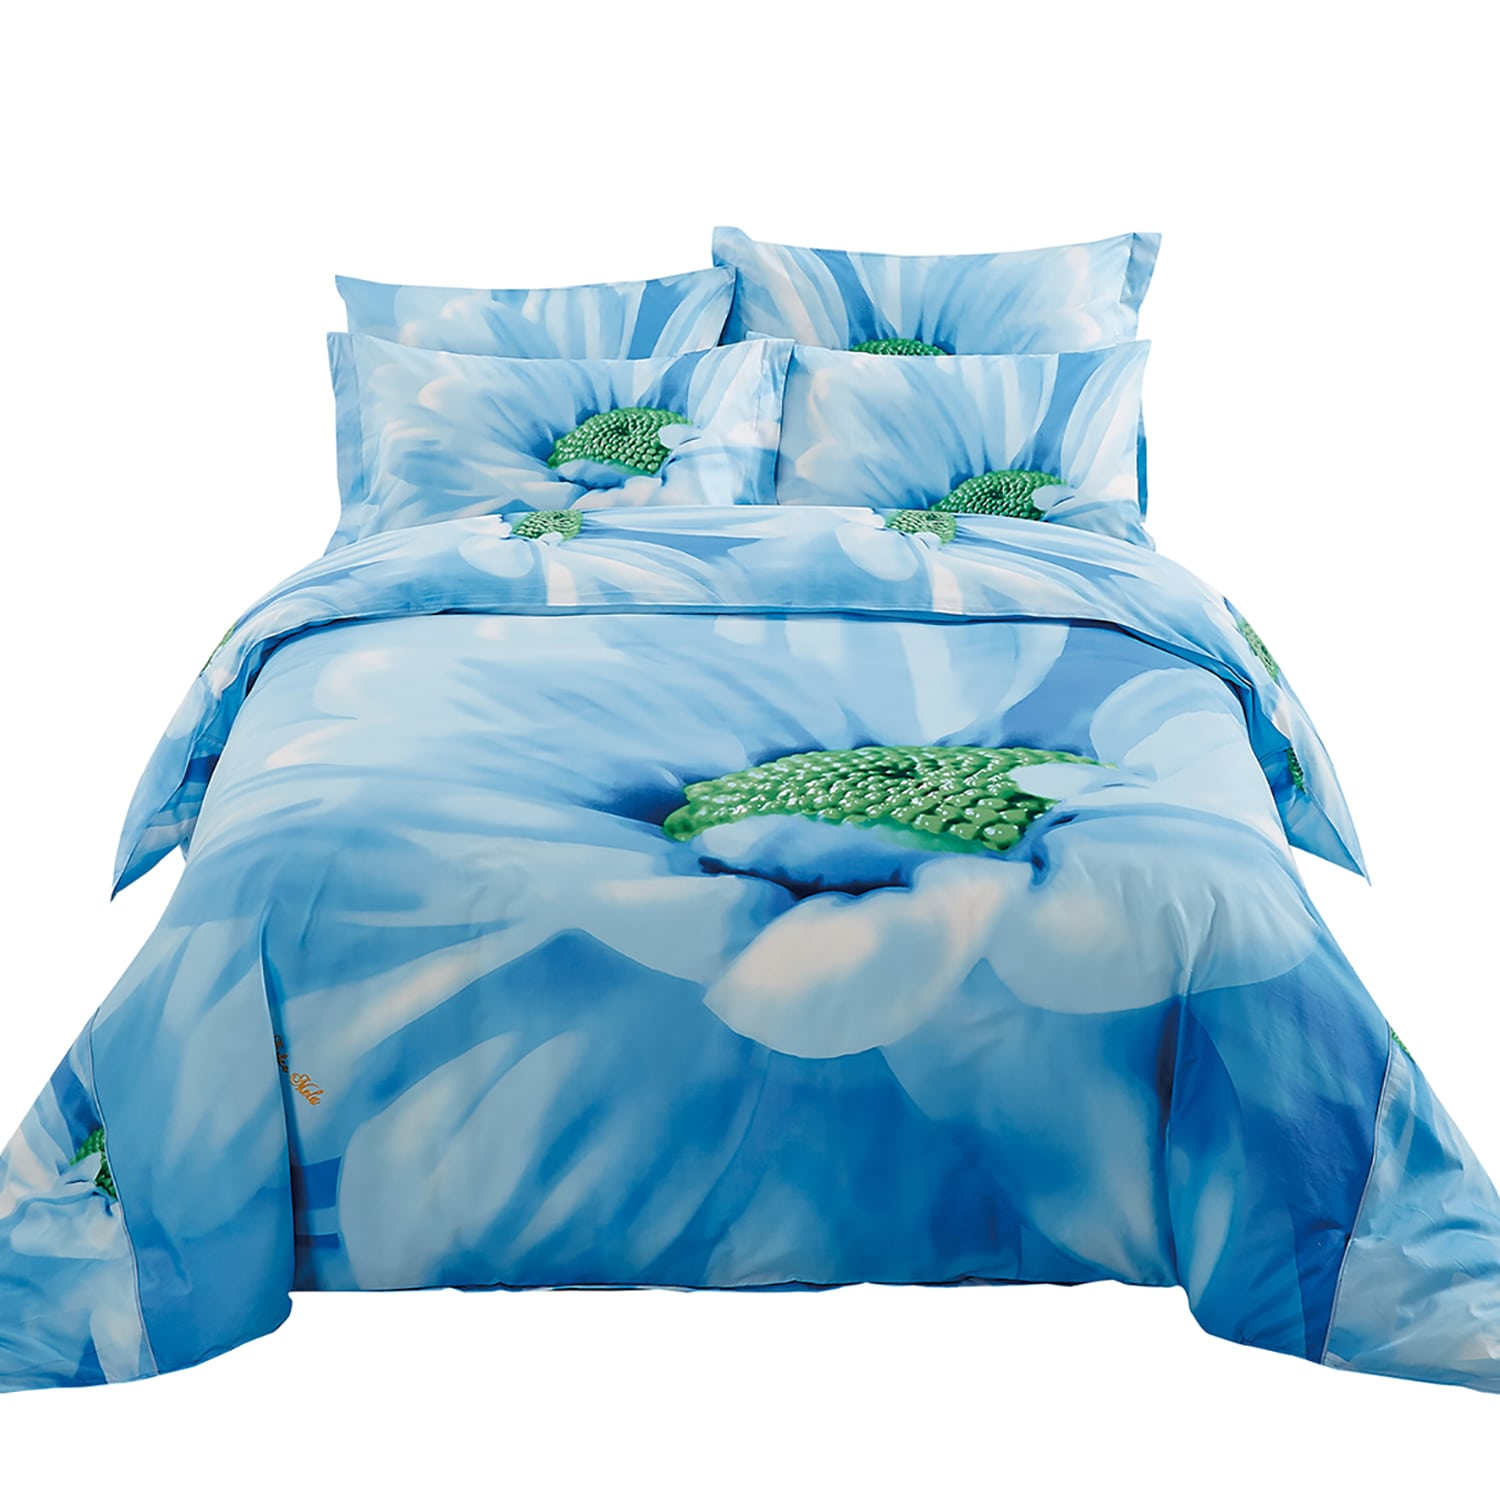 Azure By Dolce Mela Bedding Luxury Floral Cotton King Size 6 Piece ...